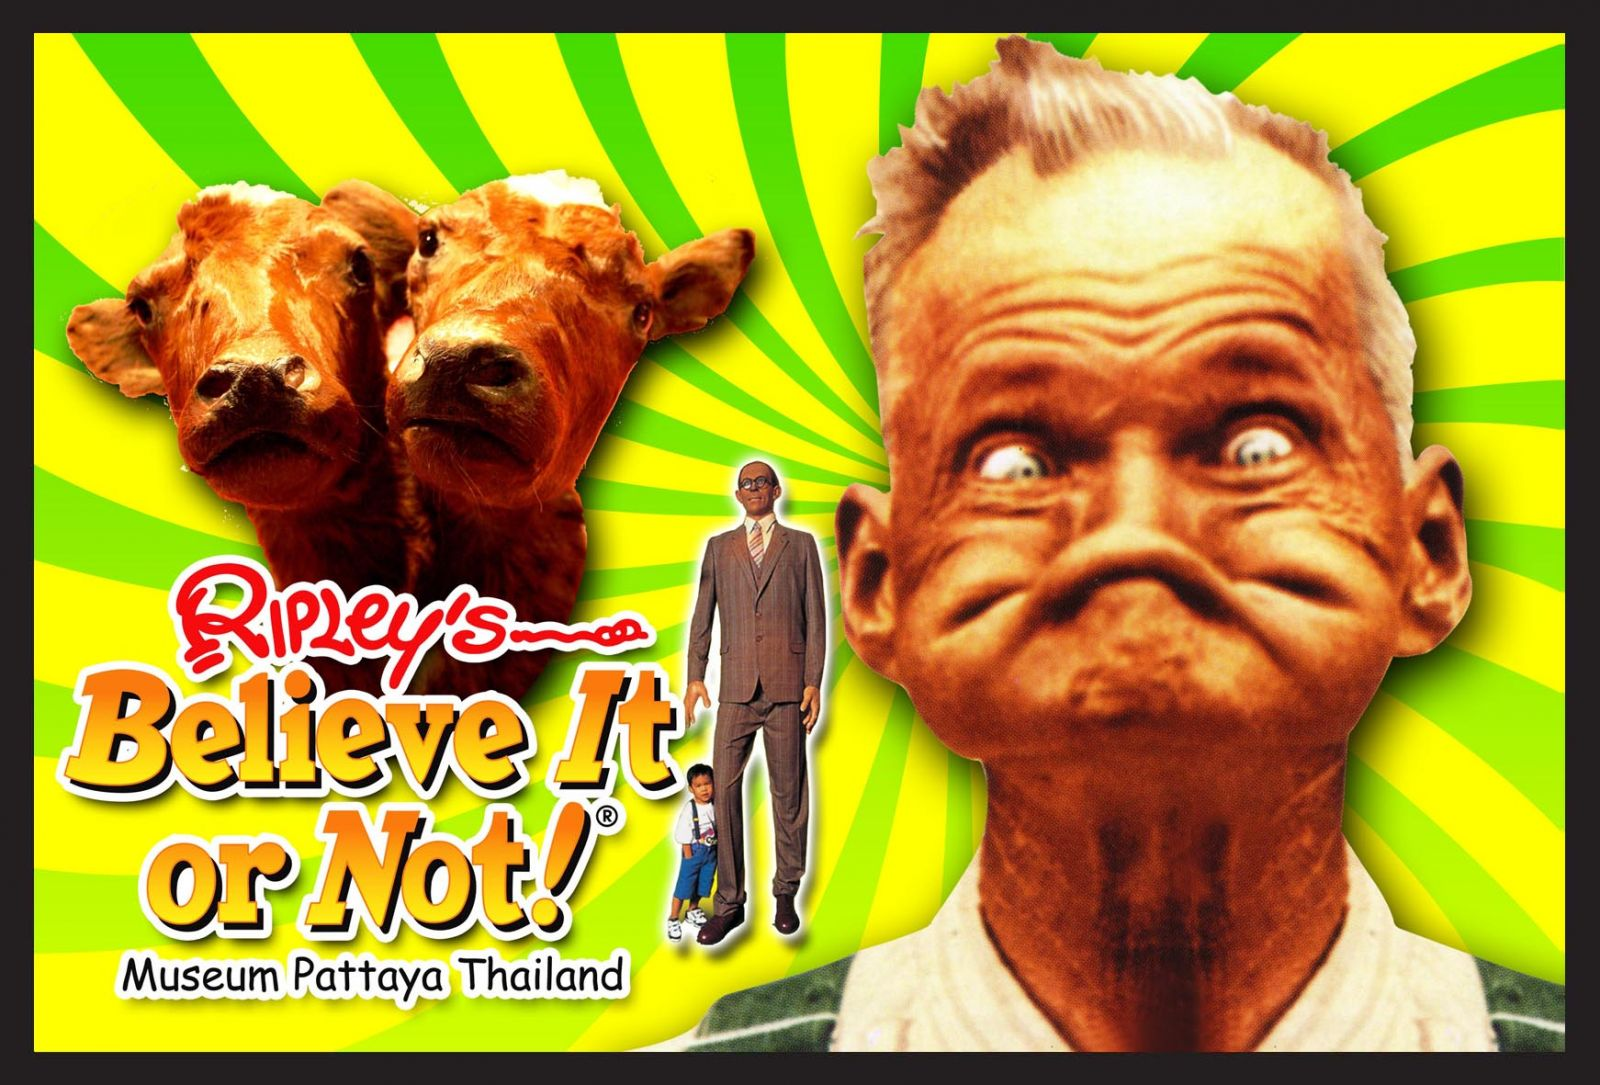 the ripleys believe it or not 9journeythailand